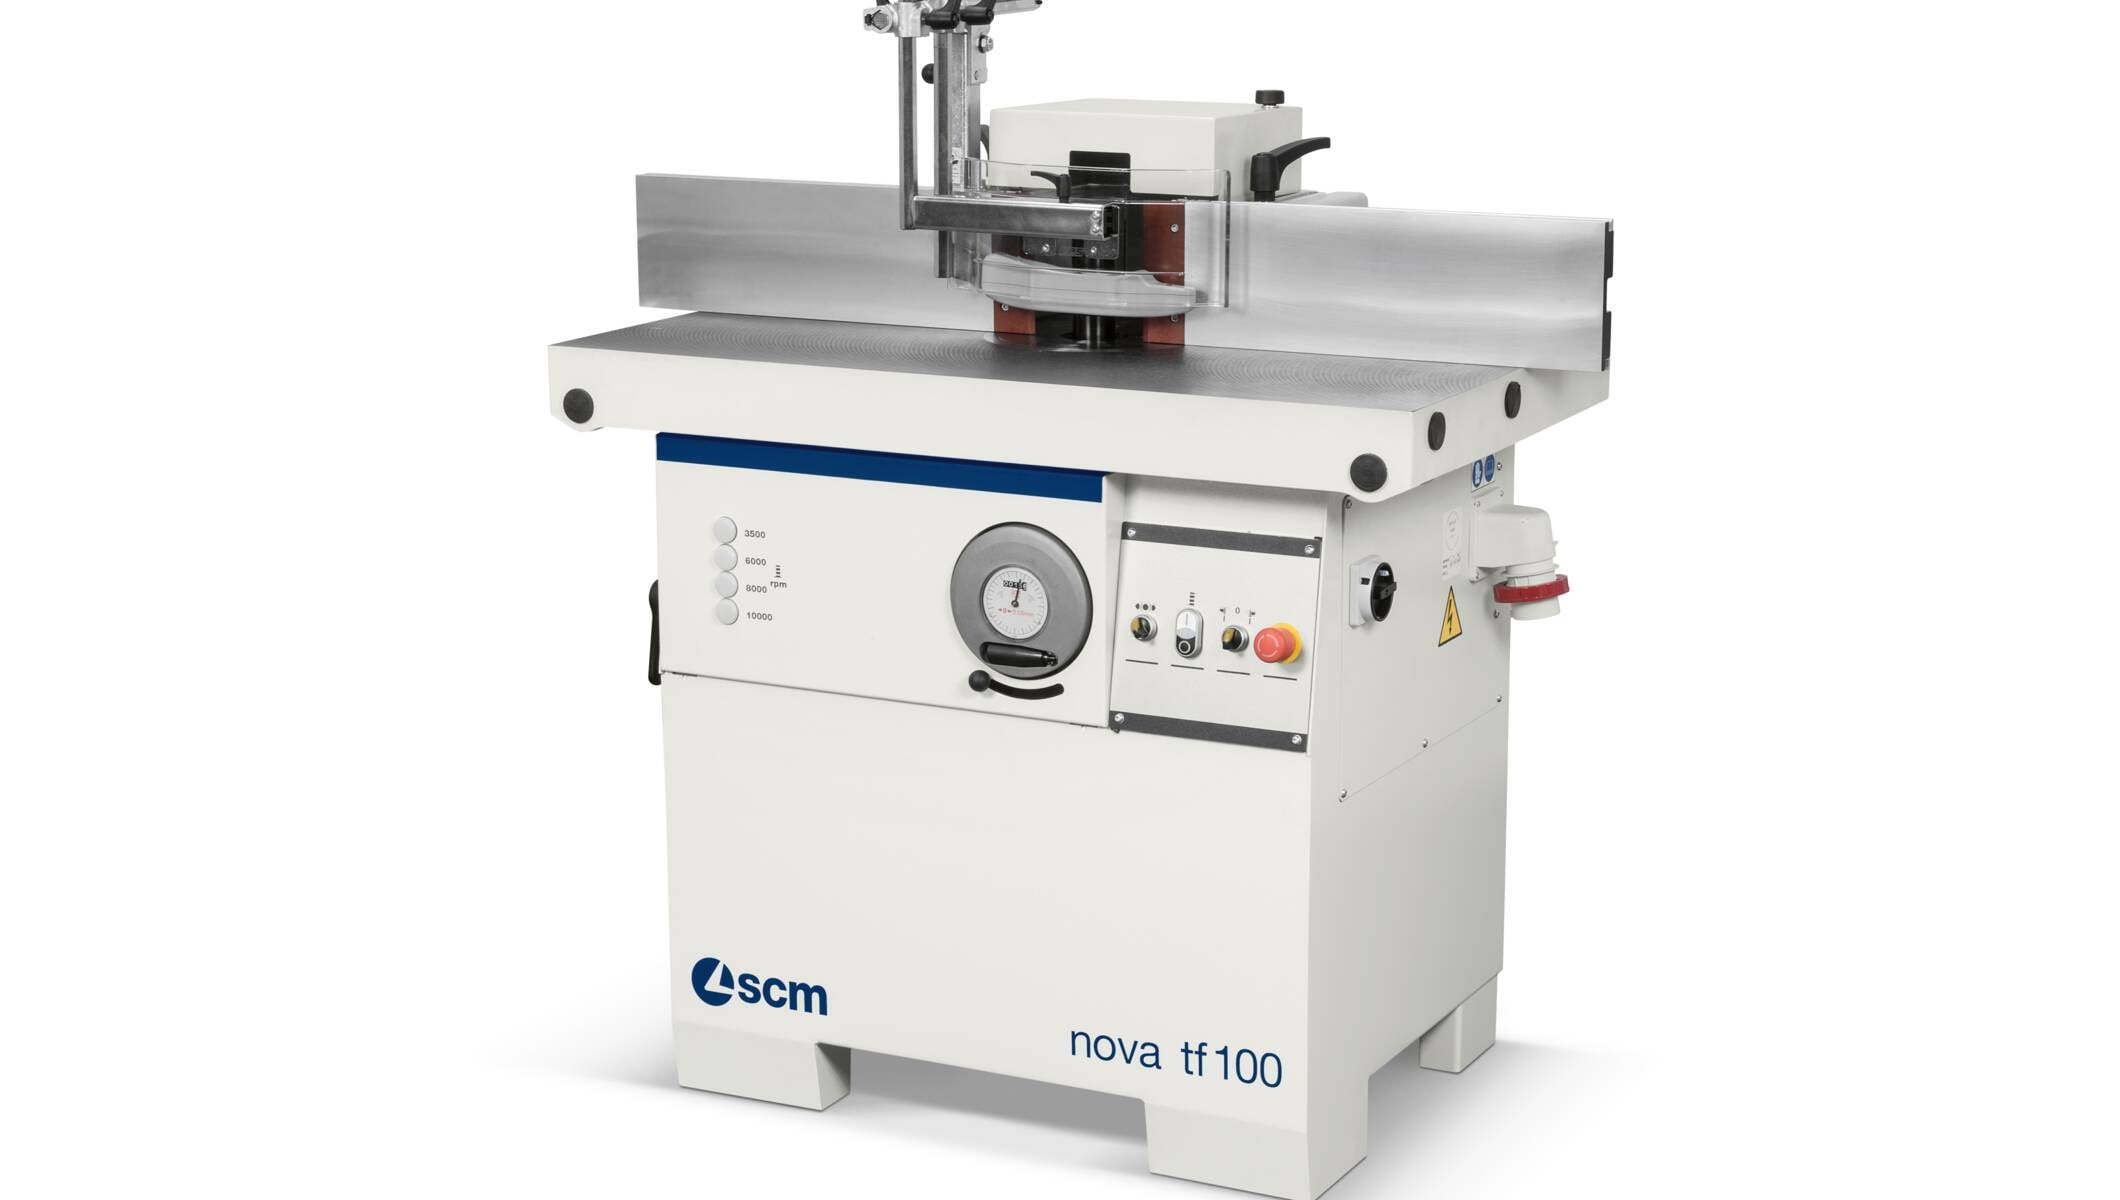 Joinery machines - Moulder - nova tf 100